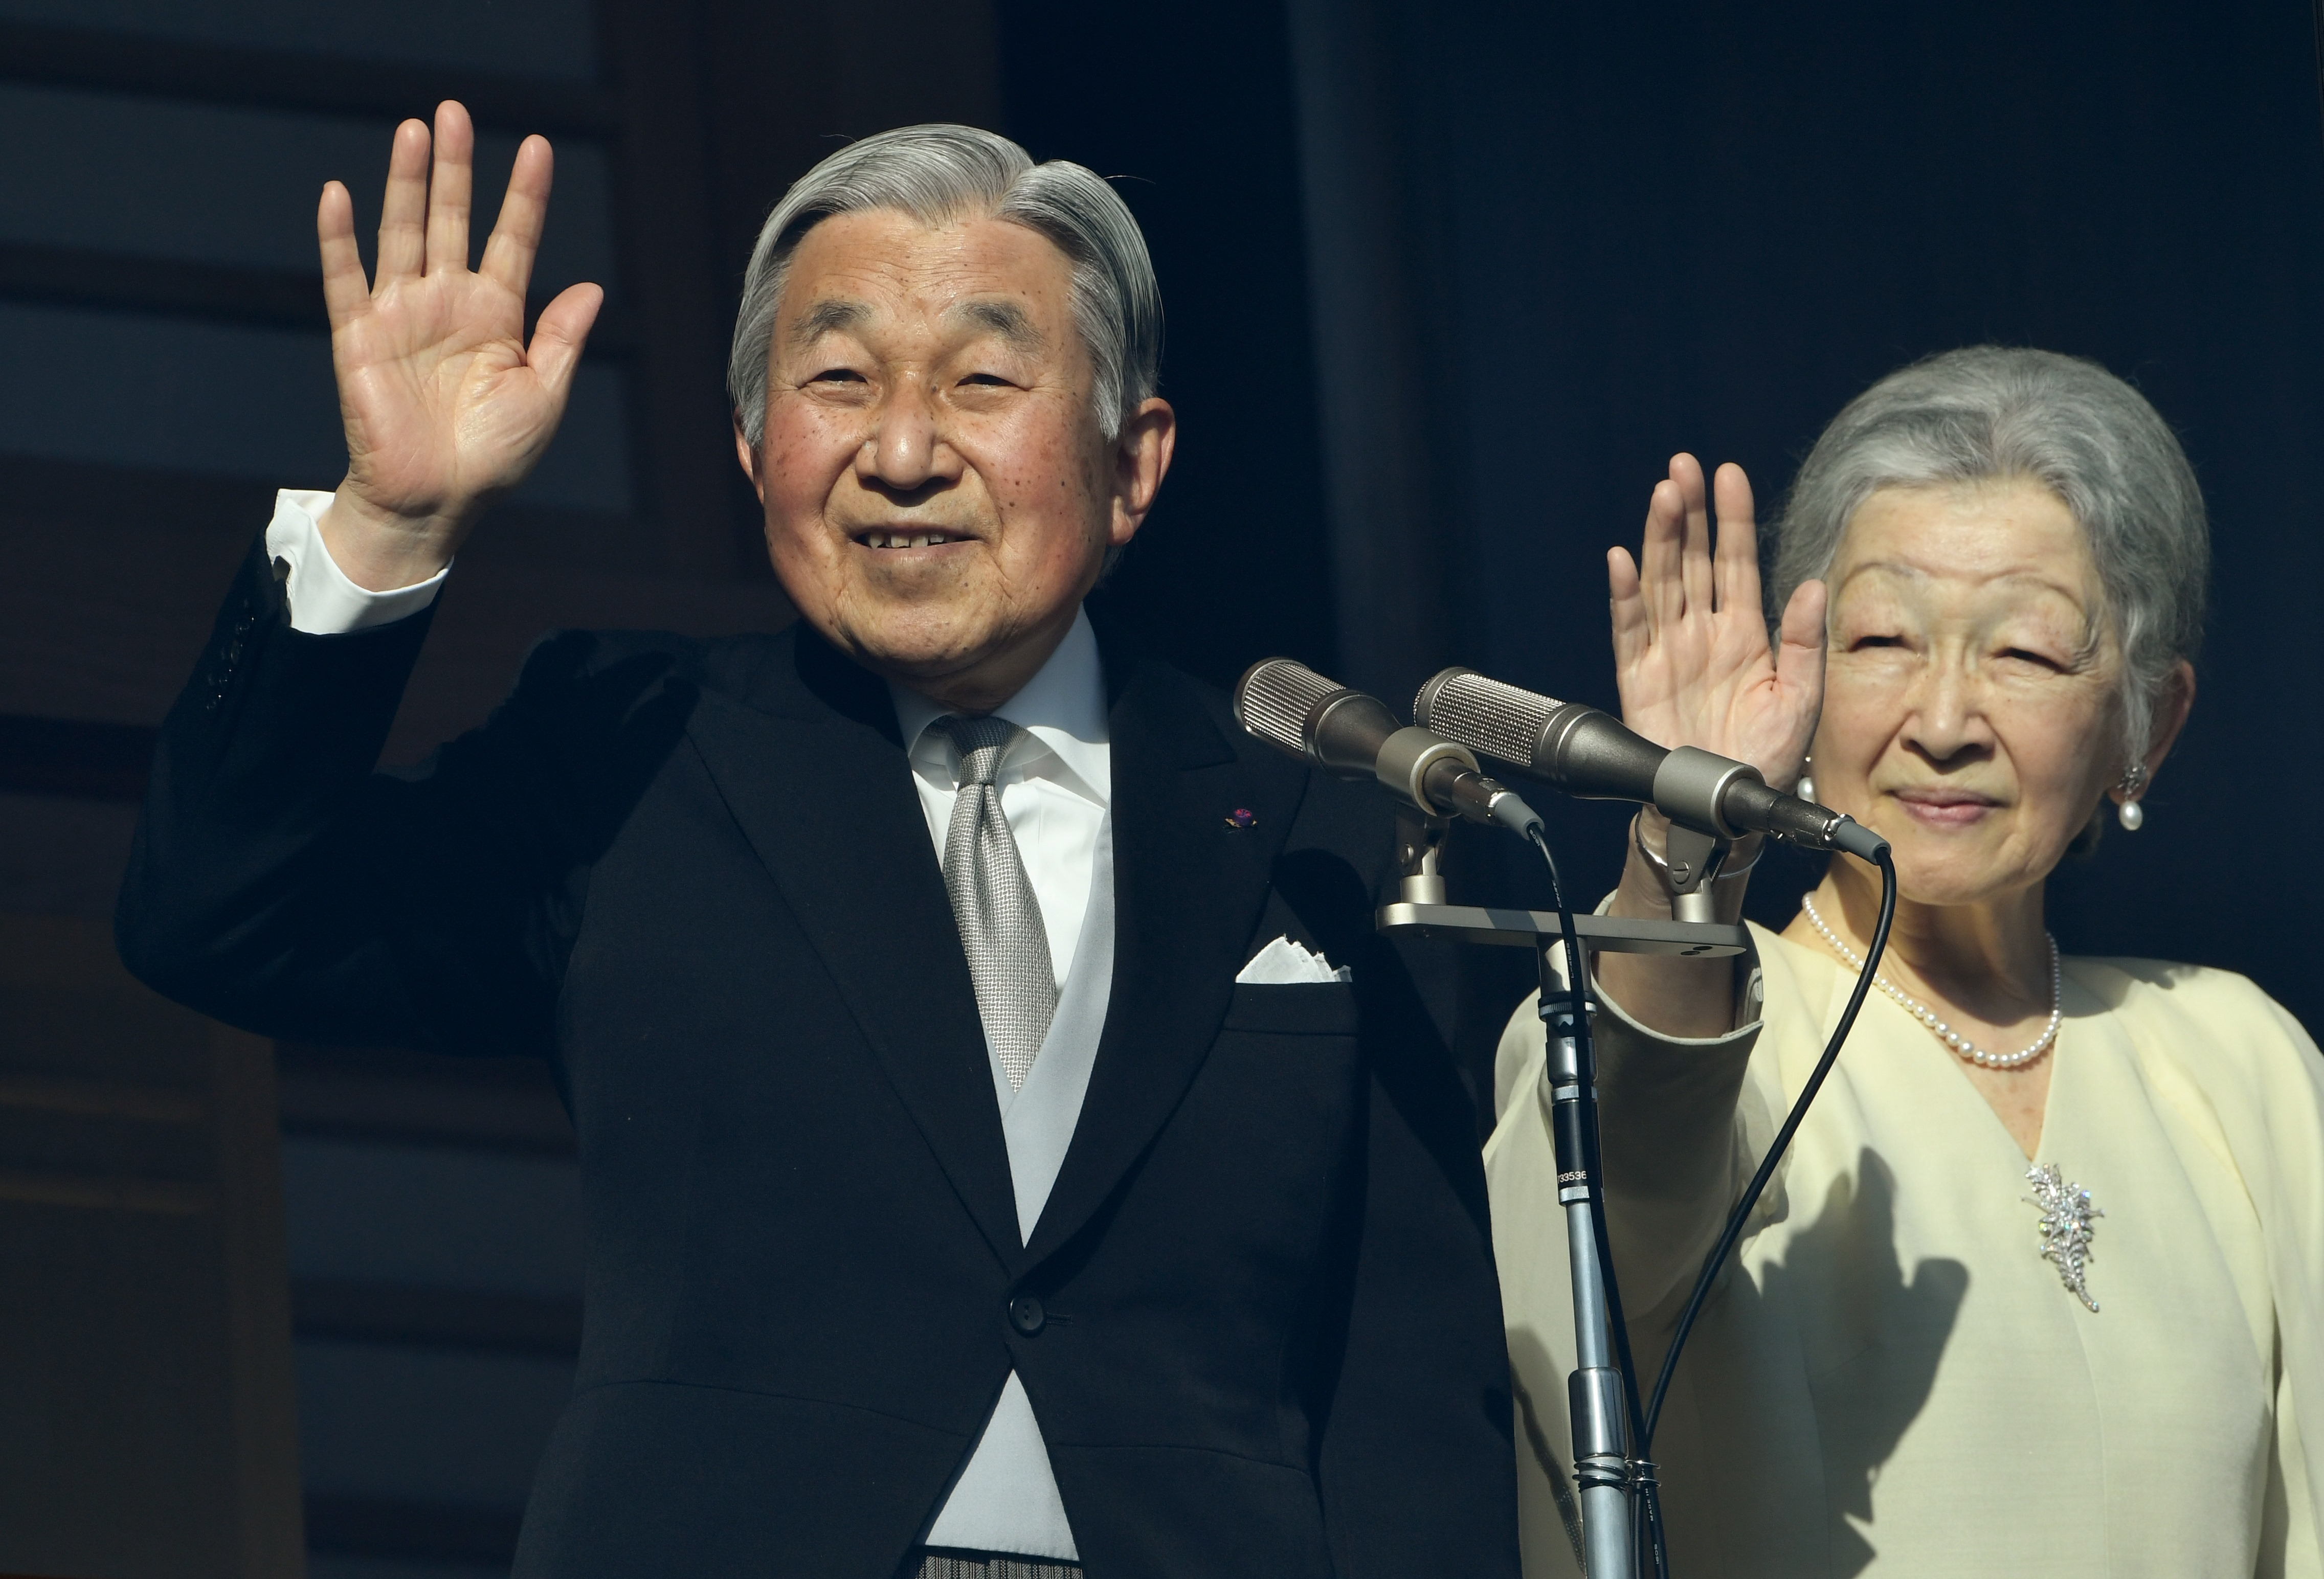 Japanese Emperor Akihito and Empress Michiko wave to well-wishers on the balcony of the Imperial Palace in Tokyo on January 2, 2017.